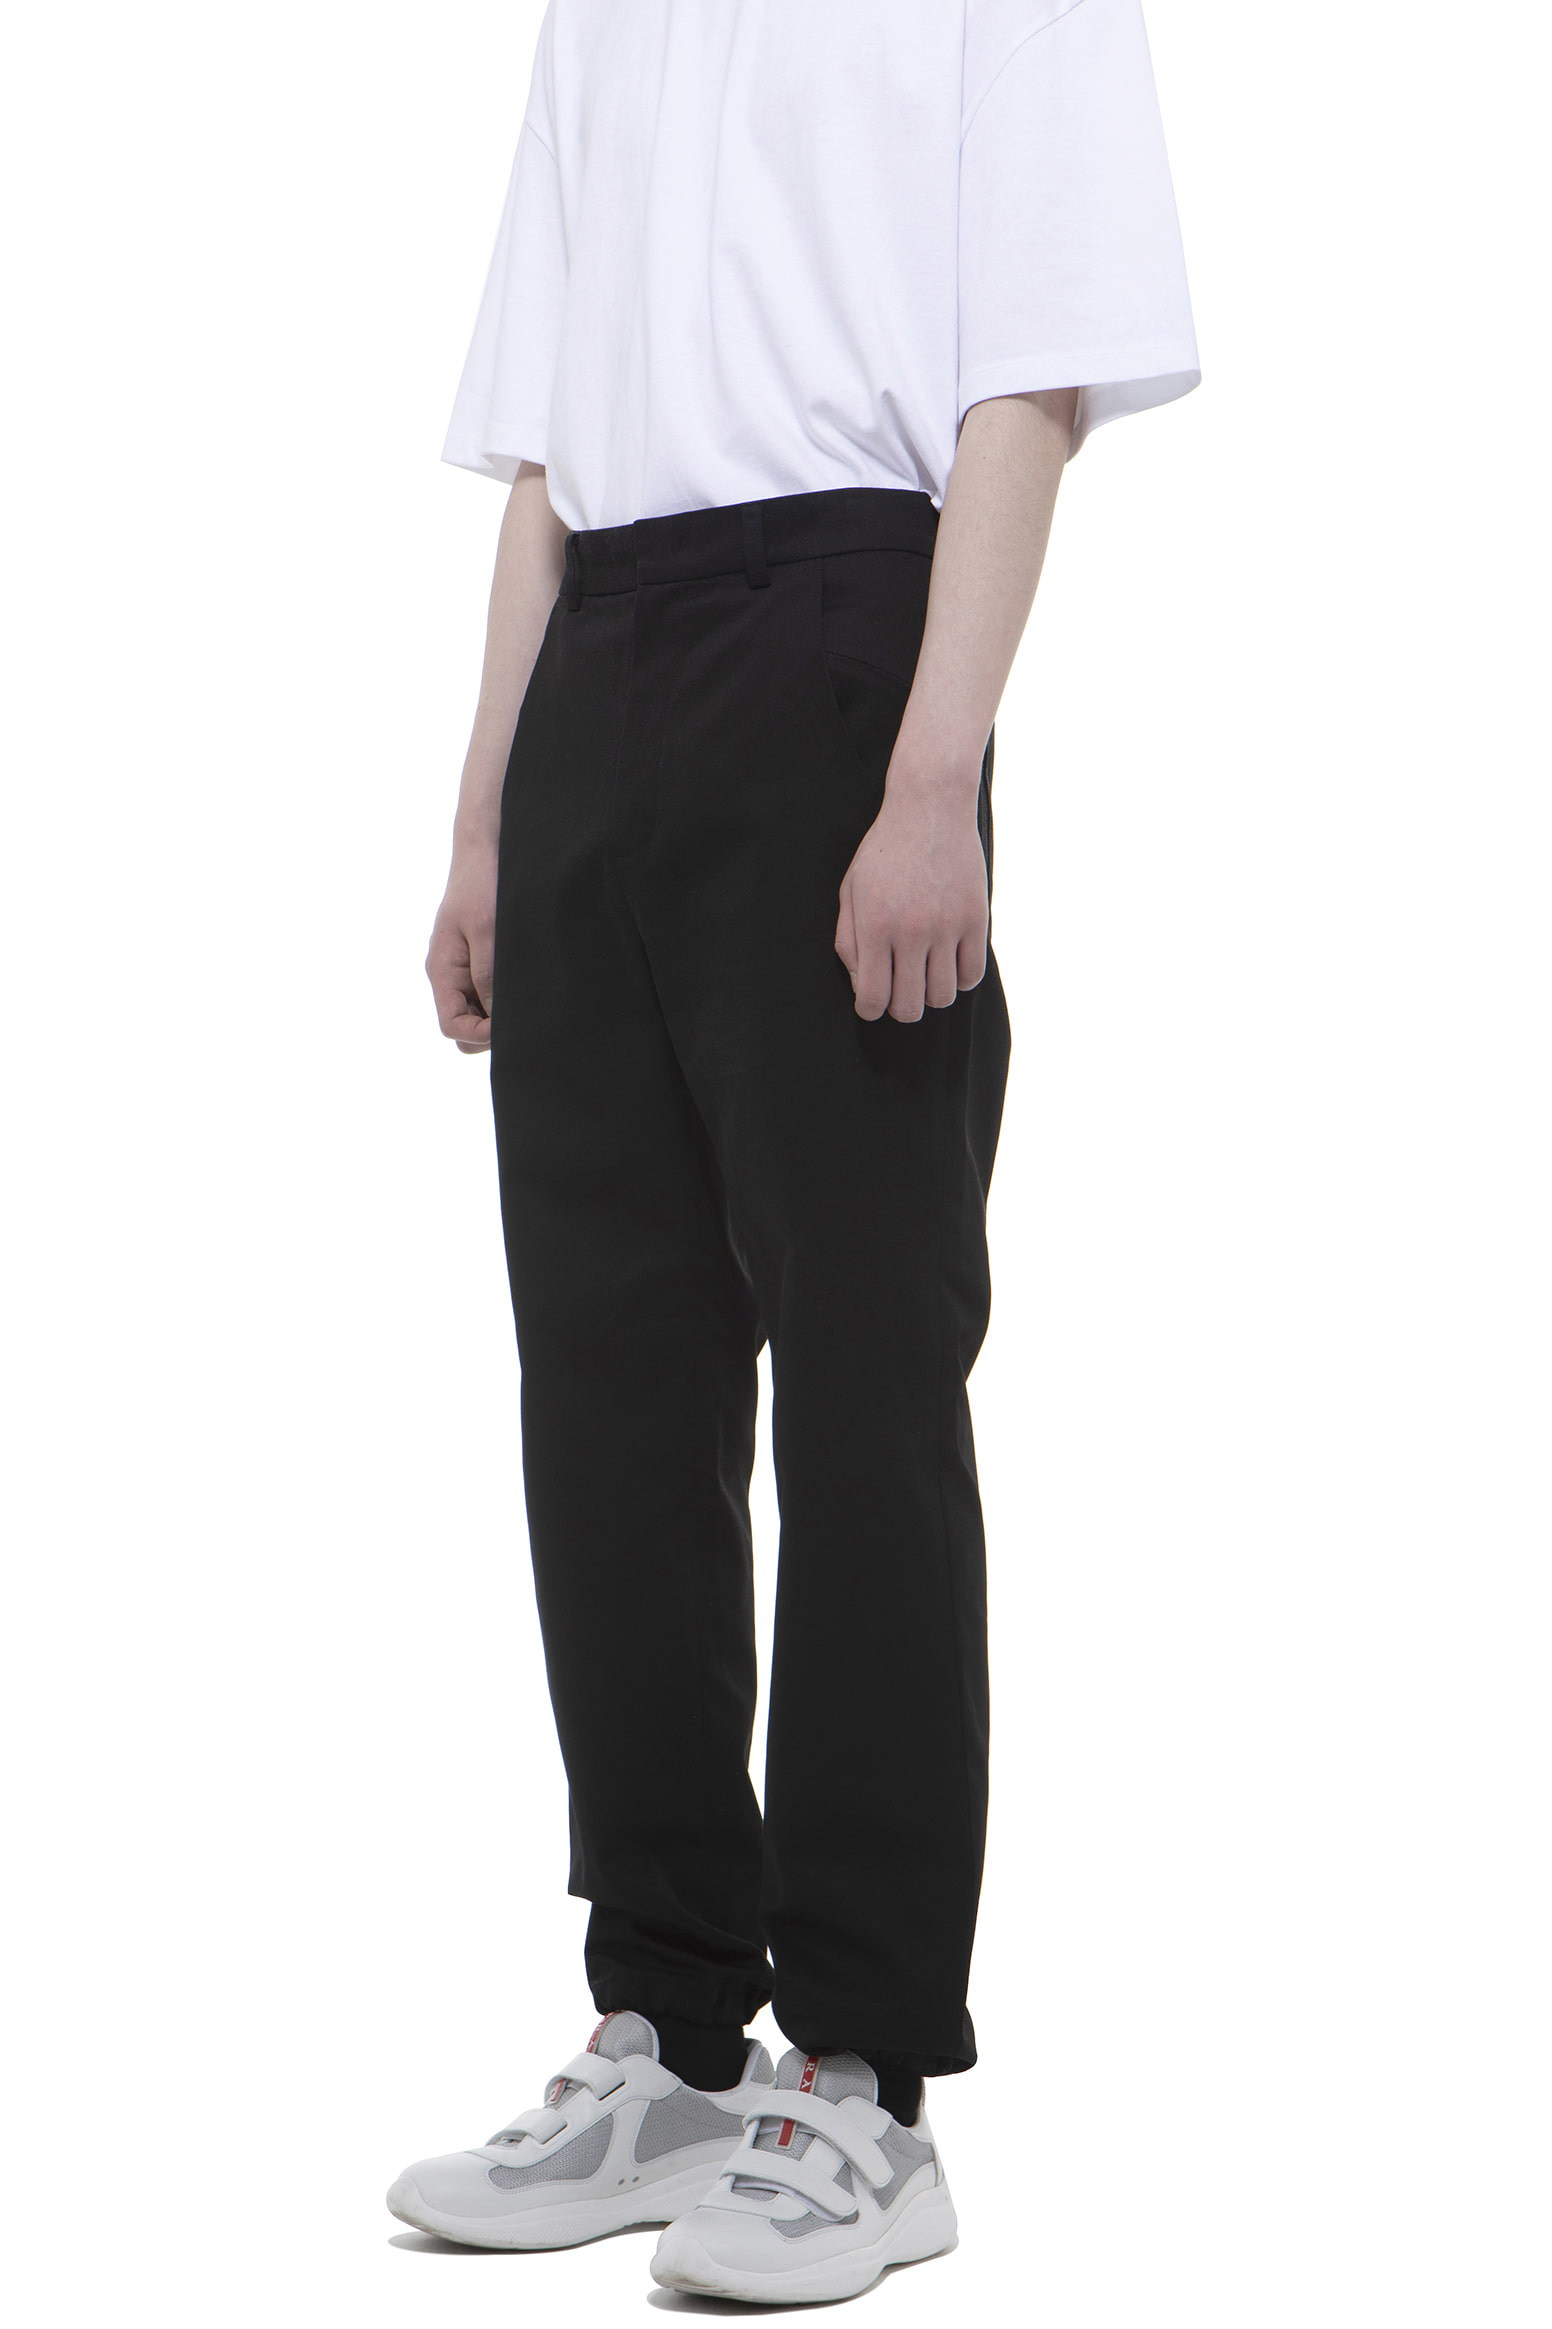 P010 / Strap Cotton Black Pants